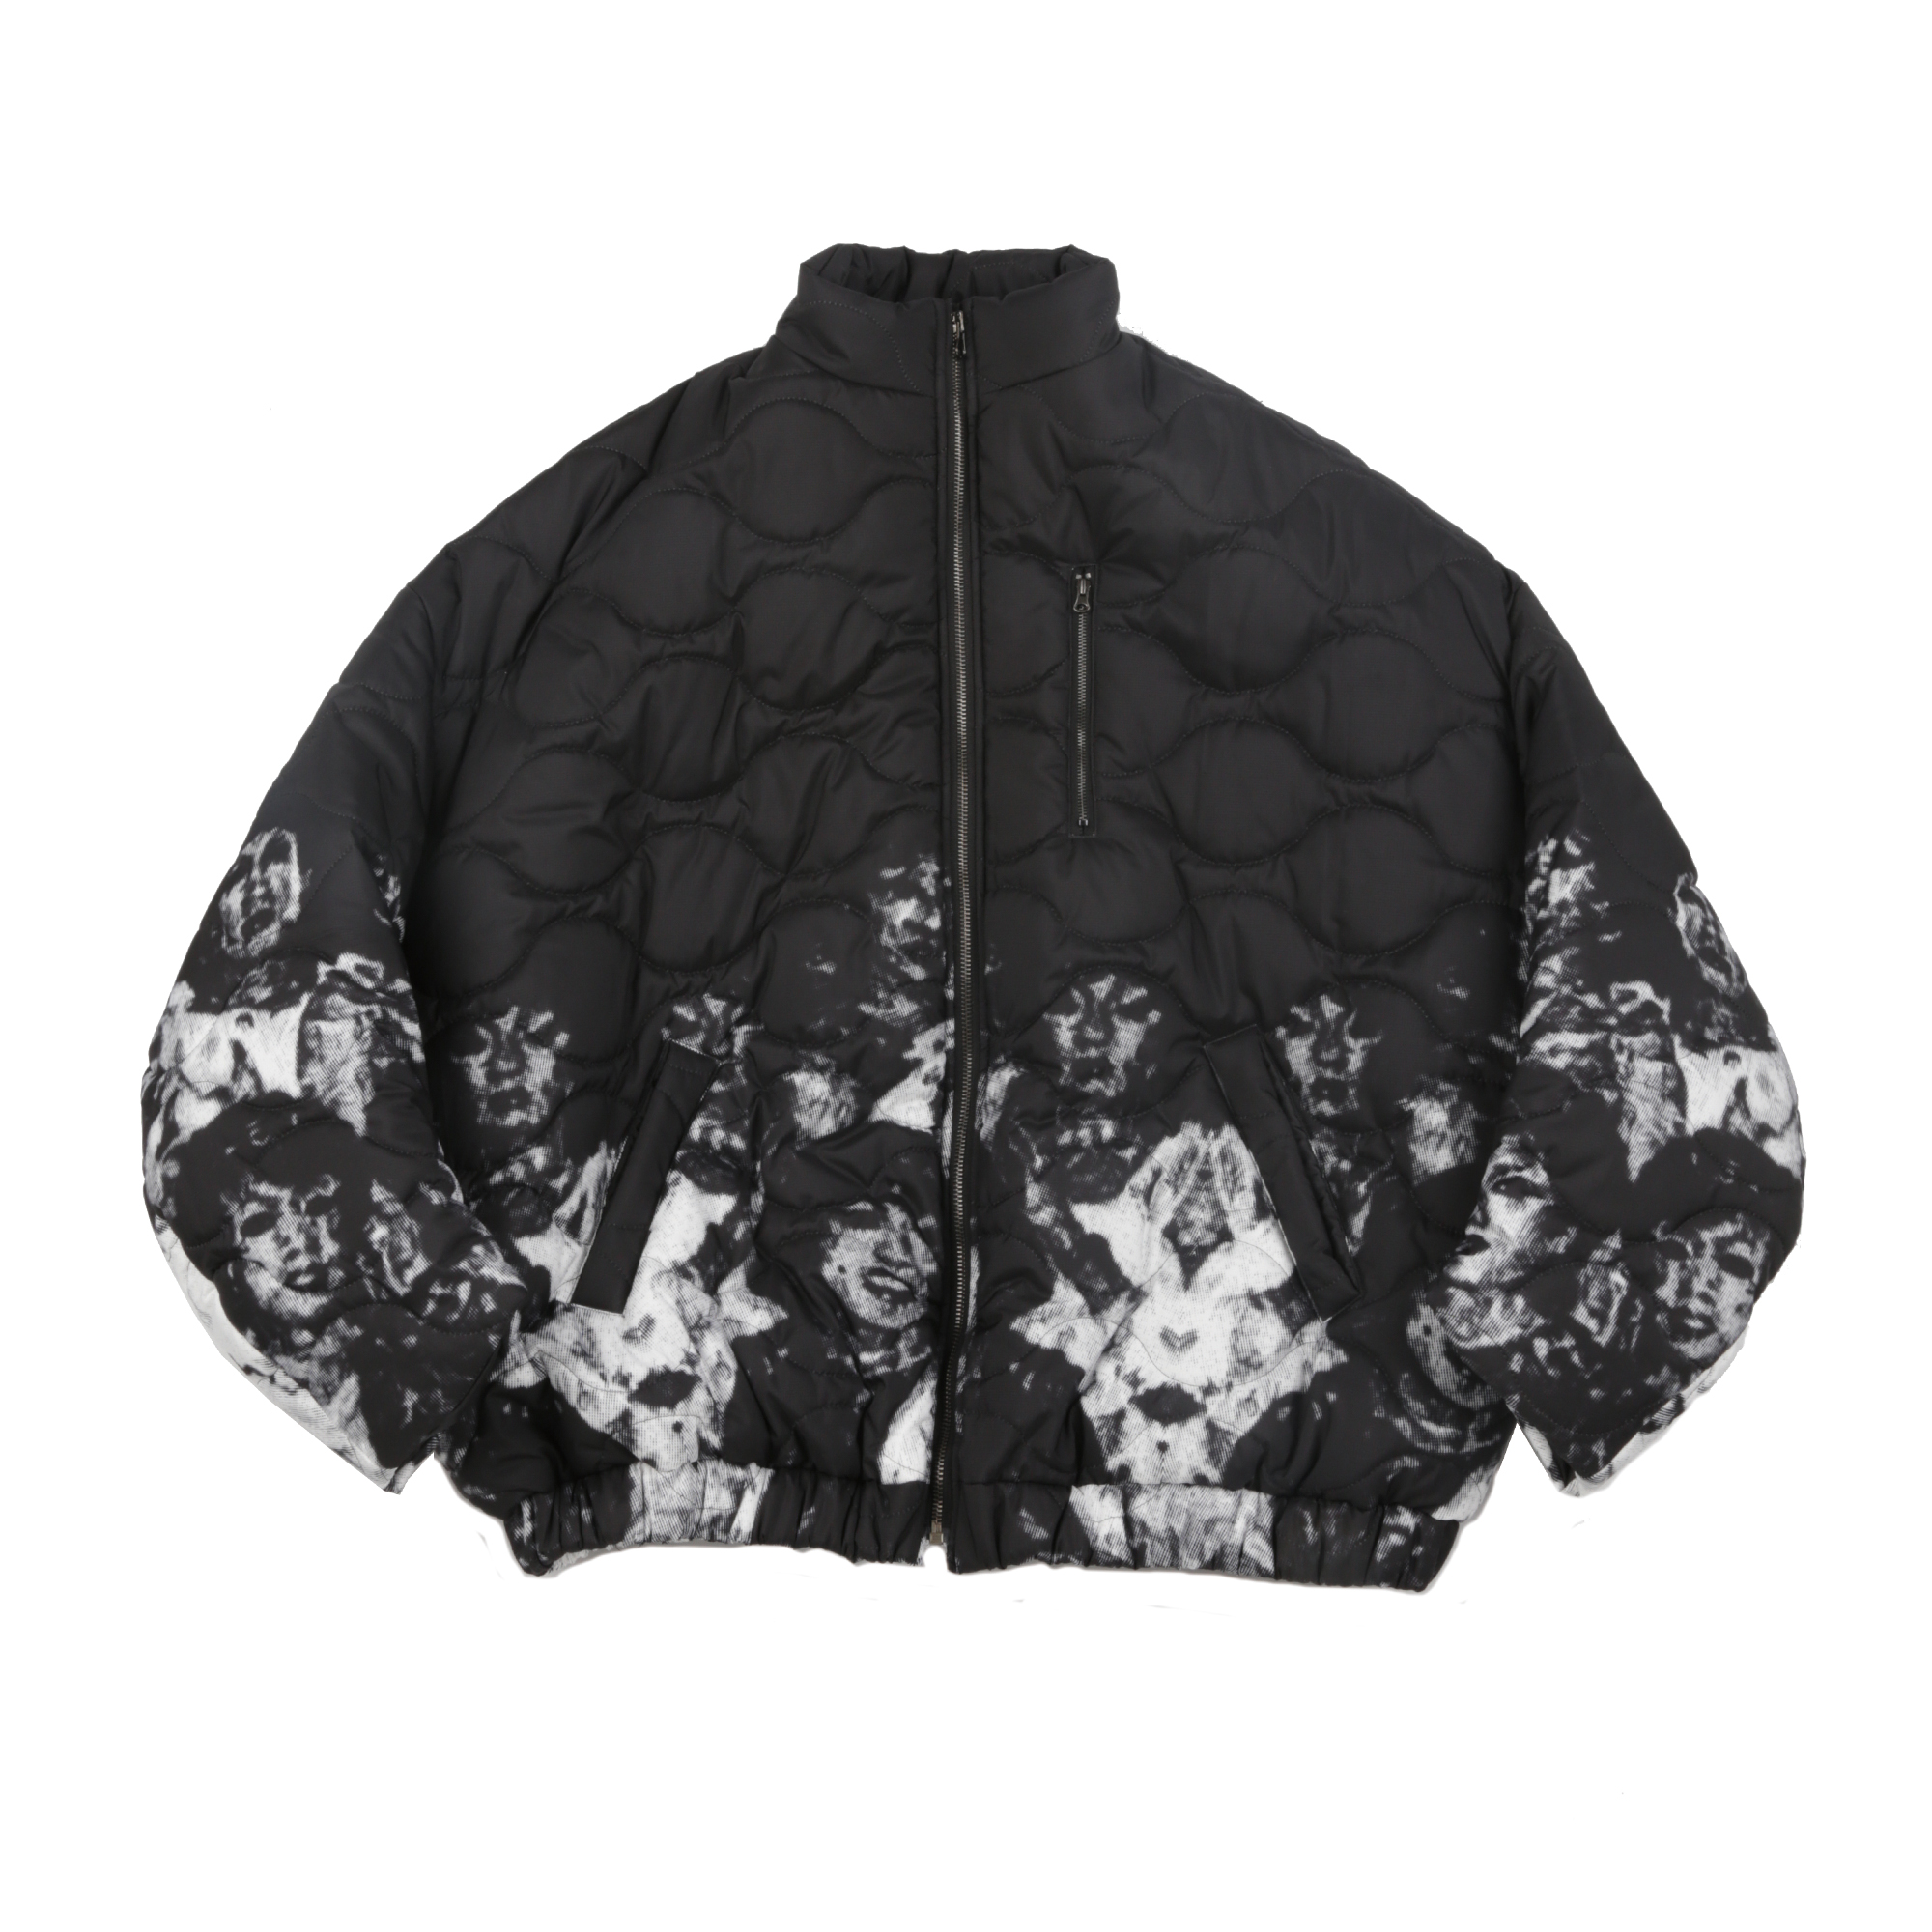 Untitled Padded Jacket, 2019_1.jpg